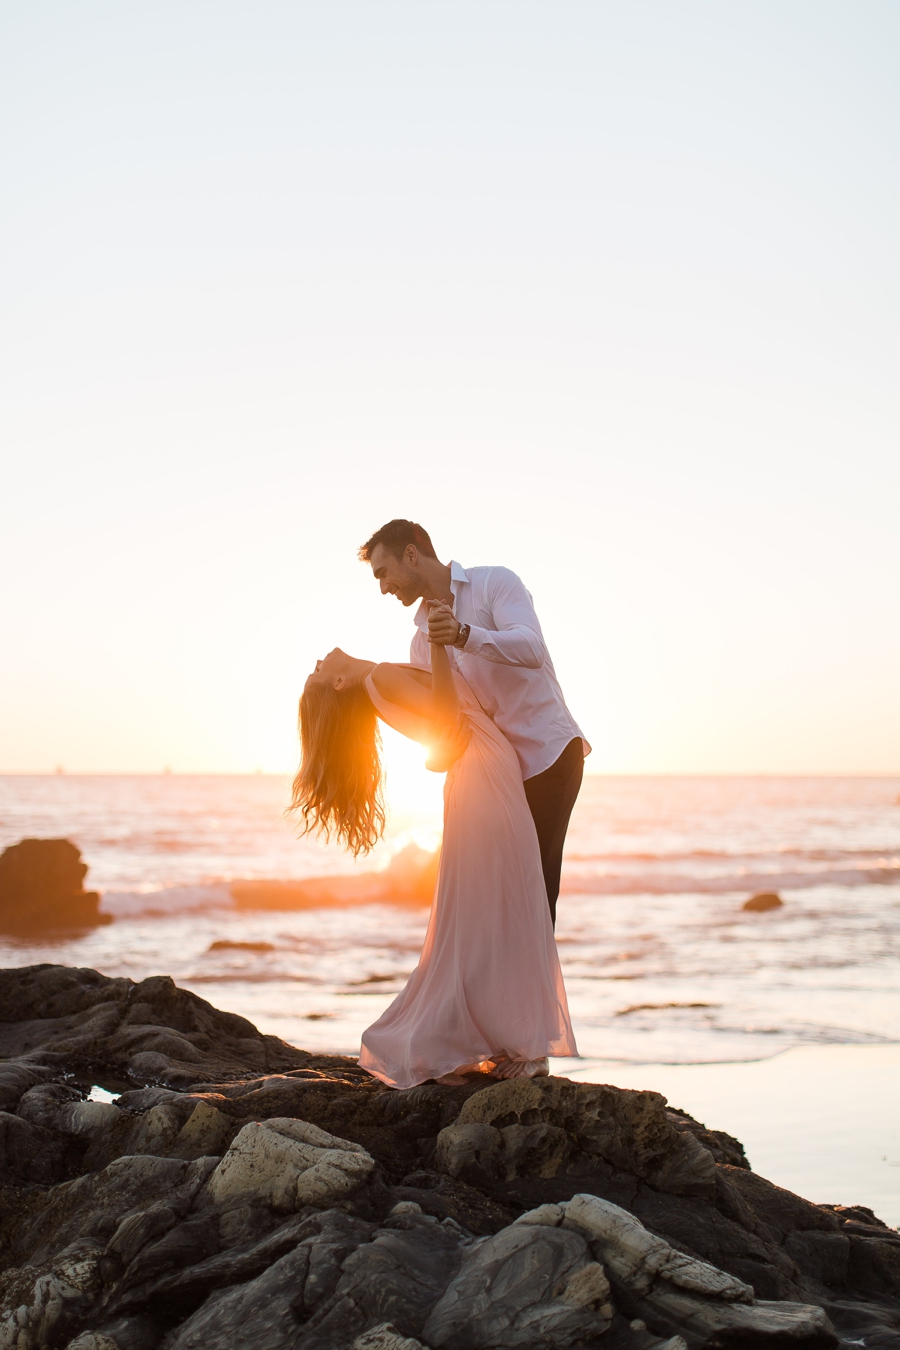 taylor_kinzie_photography_los_angeles_wedding_photographer_beach_engagement_session_0028